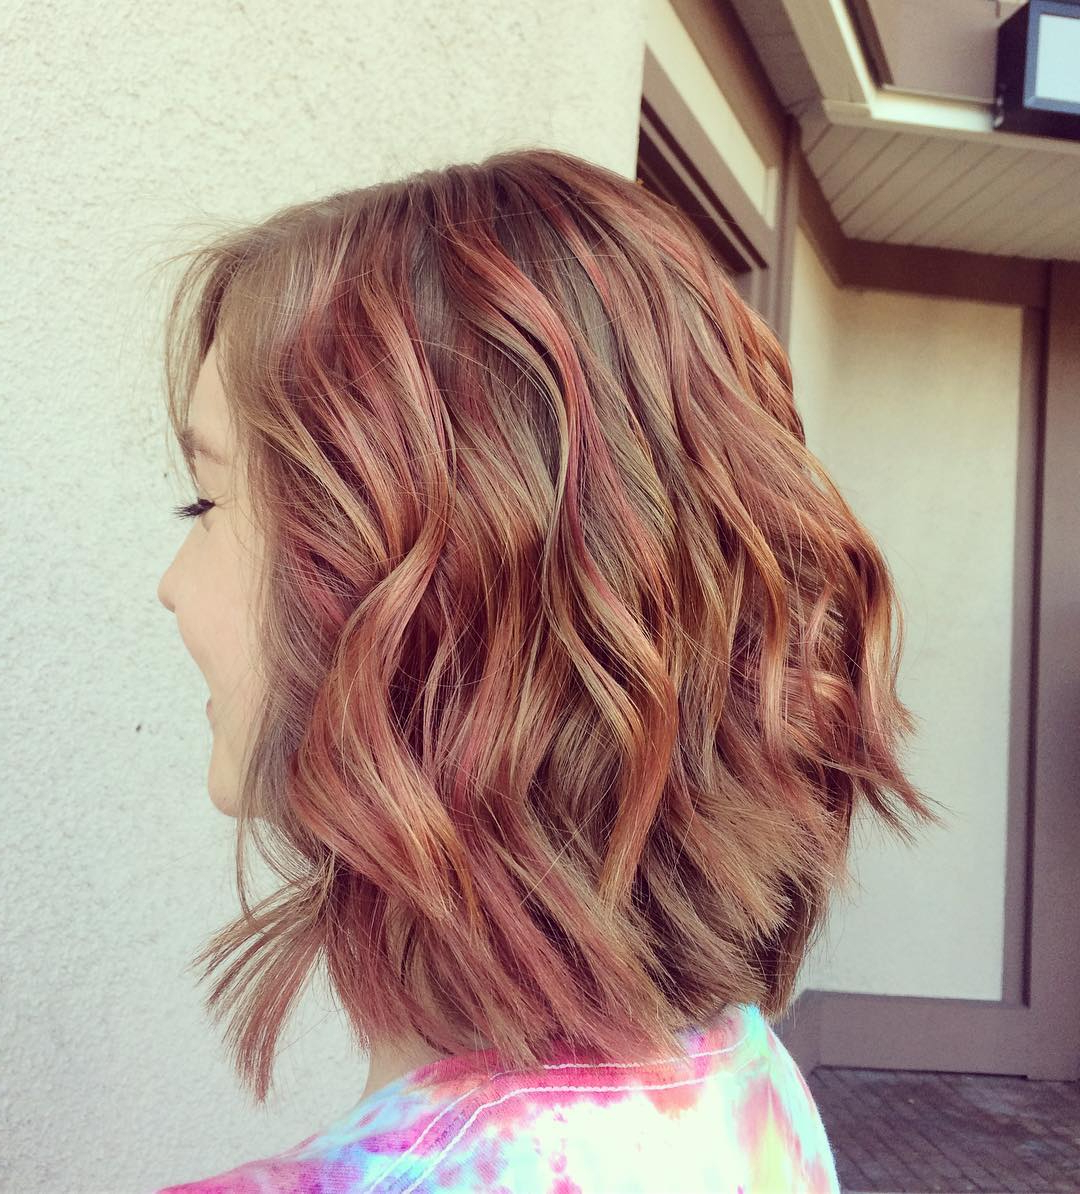 Trendy Long Layers For Messy Lob Hairstyles Within 10 Lob Haircut Ideas – Edgy Cuts & Hot New Colors – Popular Haircuts (View 15 of 20)